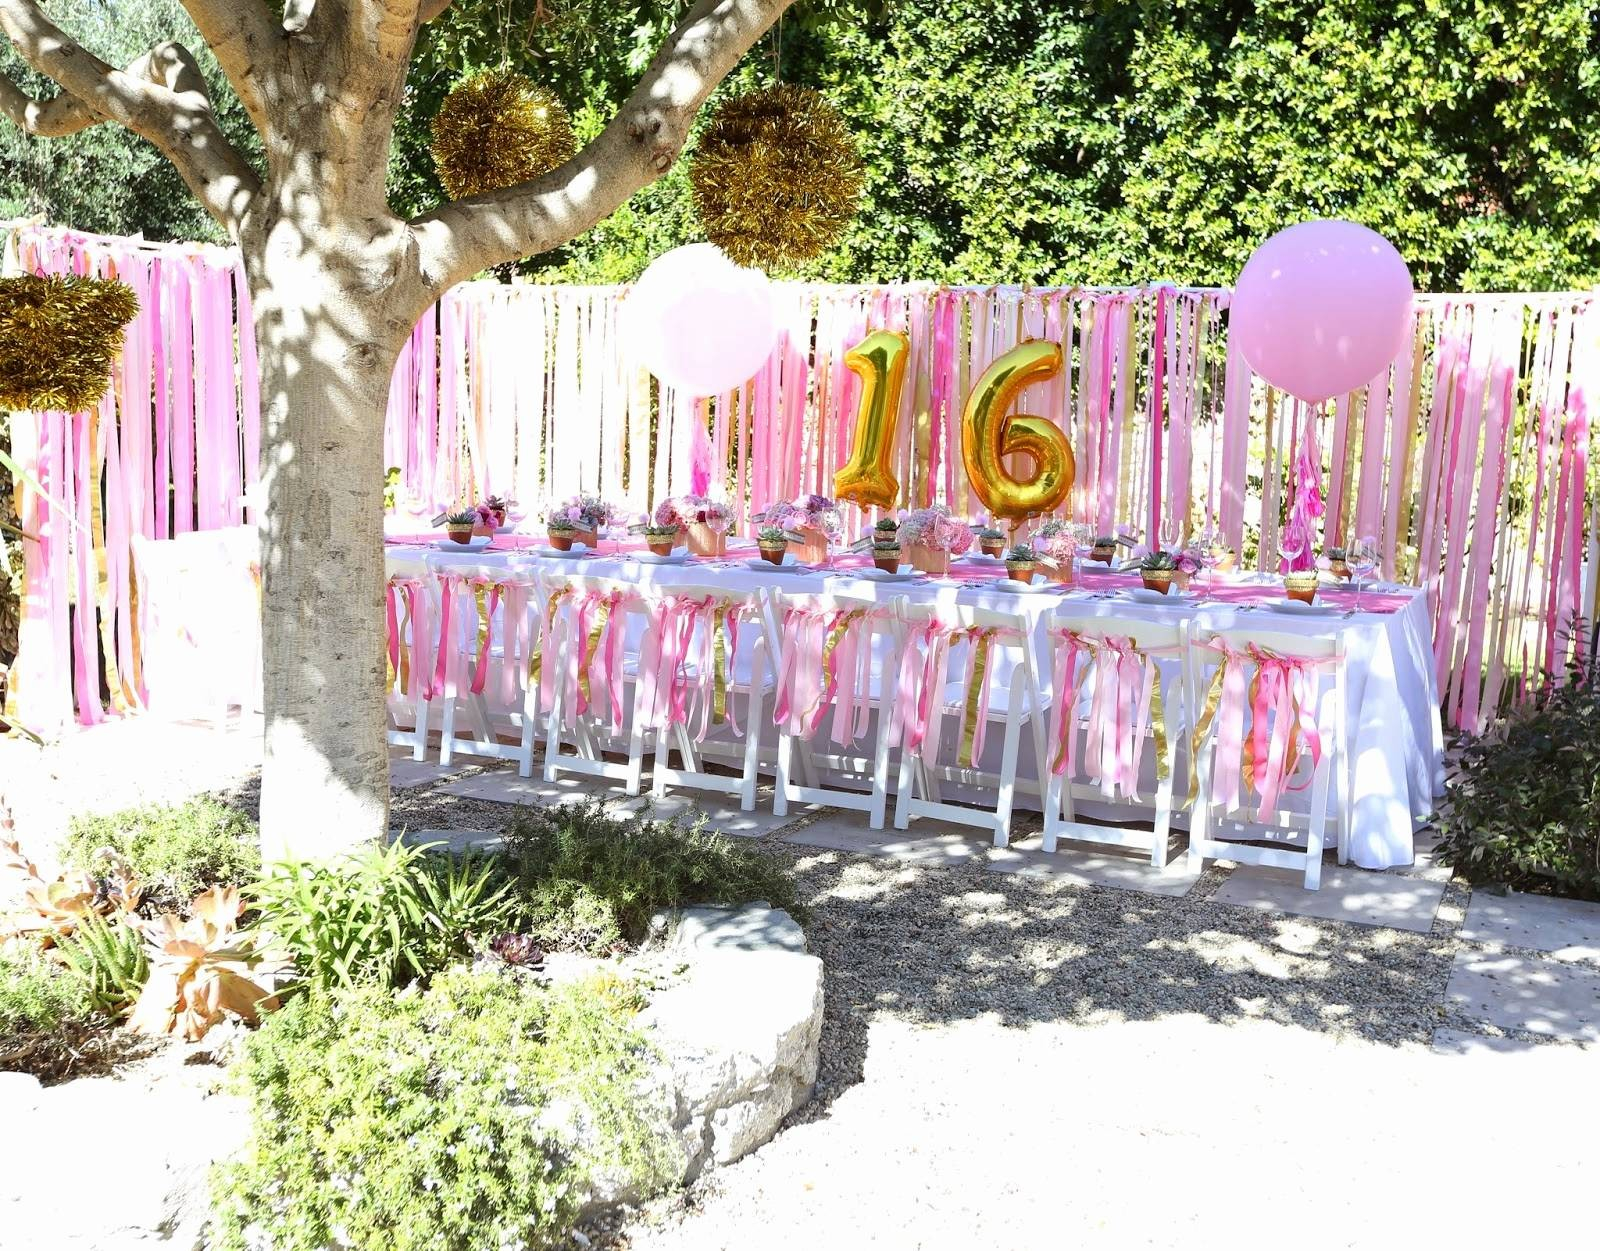 Backyard Birthday Party Ideas Sweet 16 Gift For A Girl Astonishing within 13 Smart Ideas How to Makeover Backyard Birthday Party Ideas Sweet 16